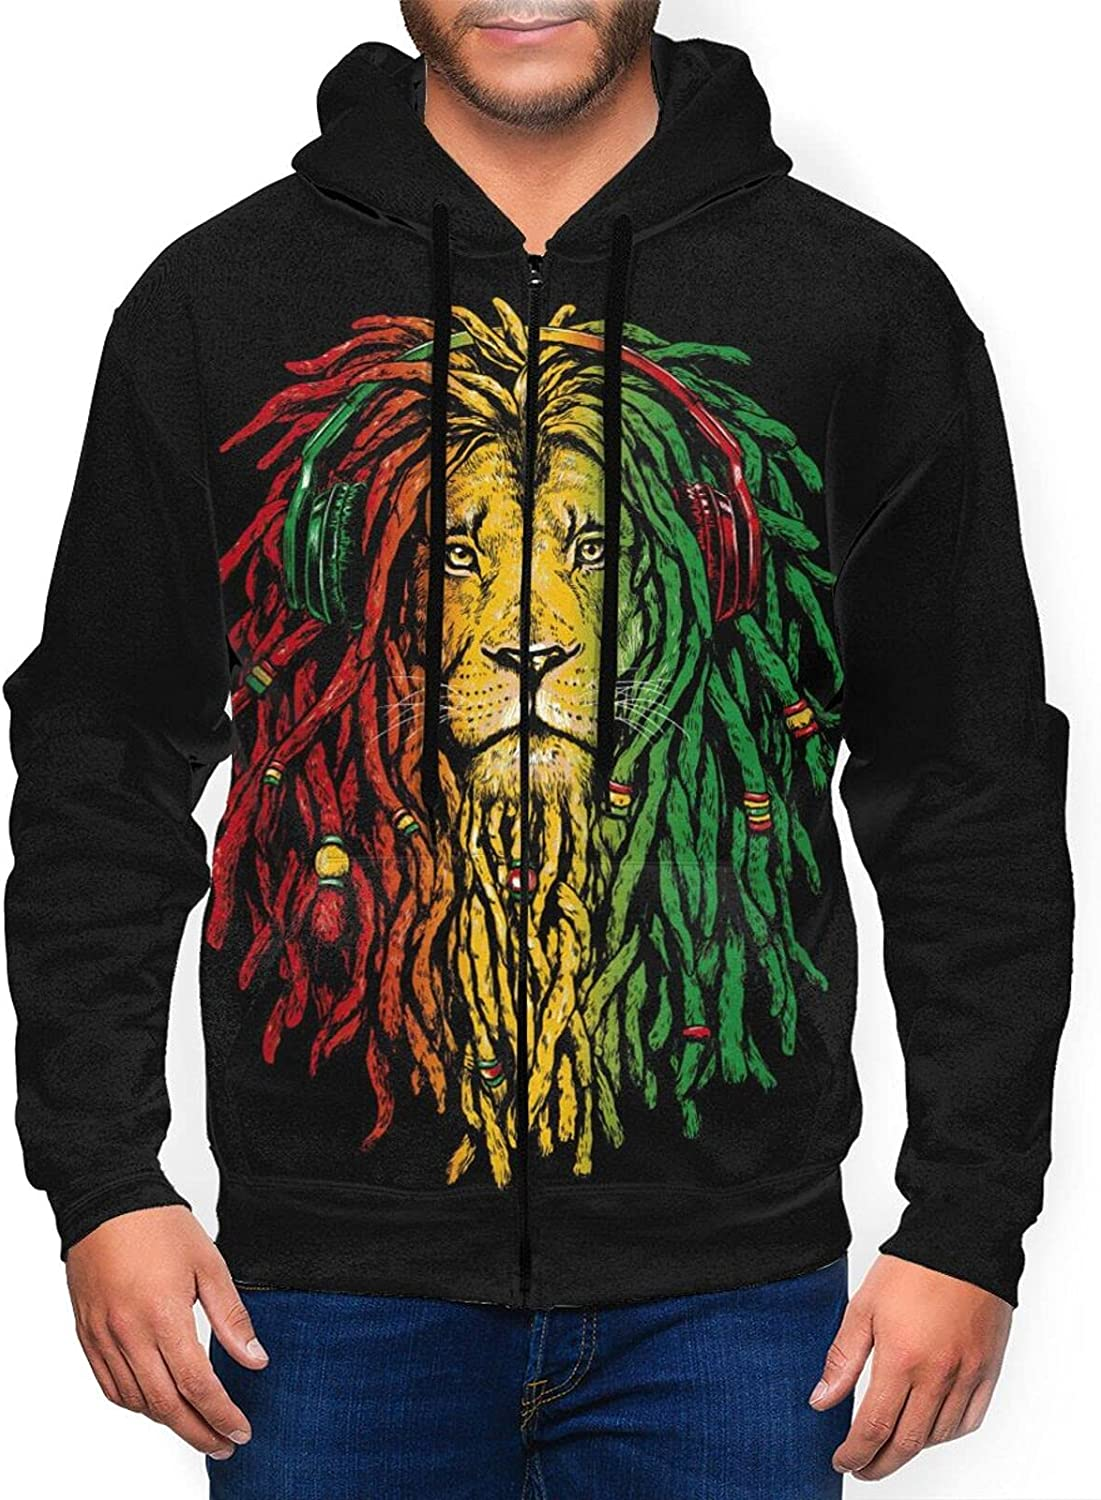 Newwo Jamaican Music Lion Flag Mens Sweat Jacket Max 69% OFF 100% quality warranty! Hooded Full-Zip